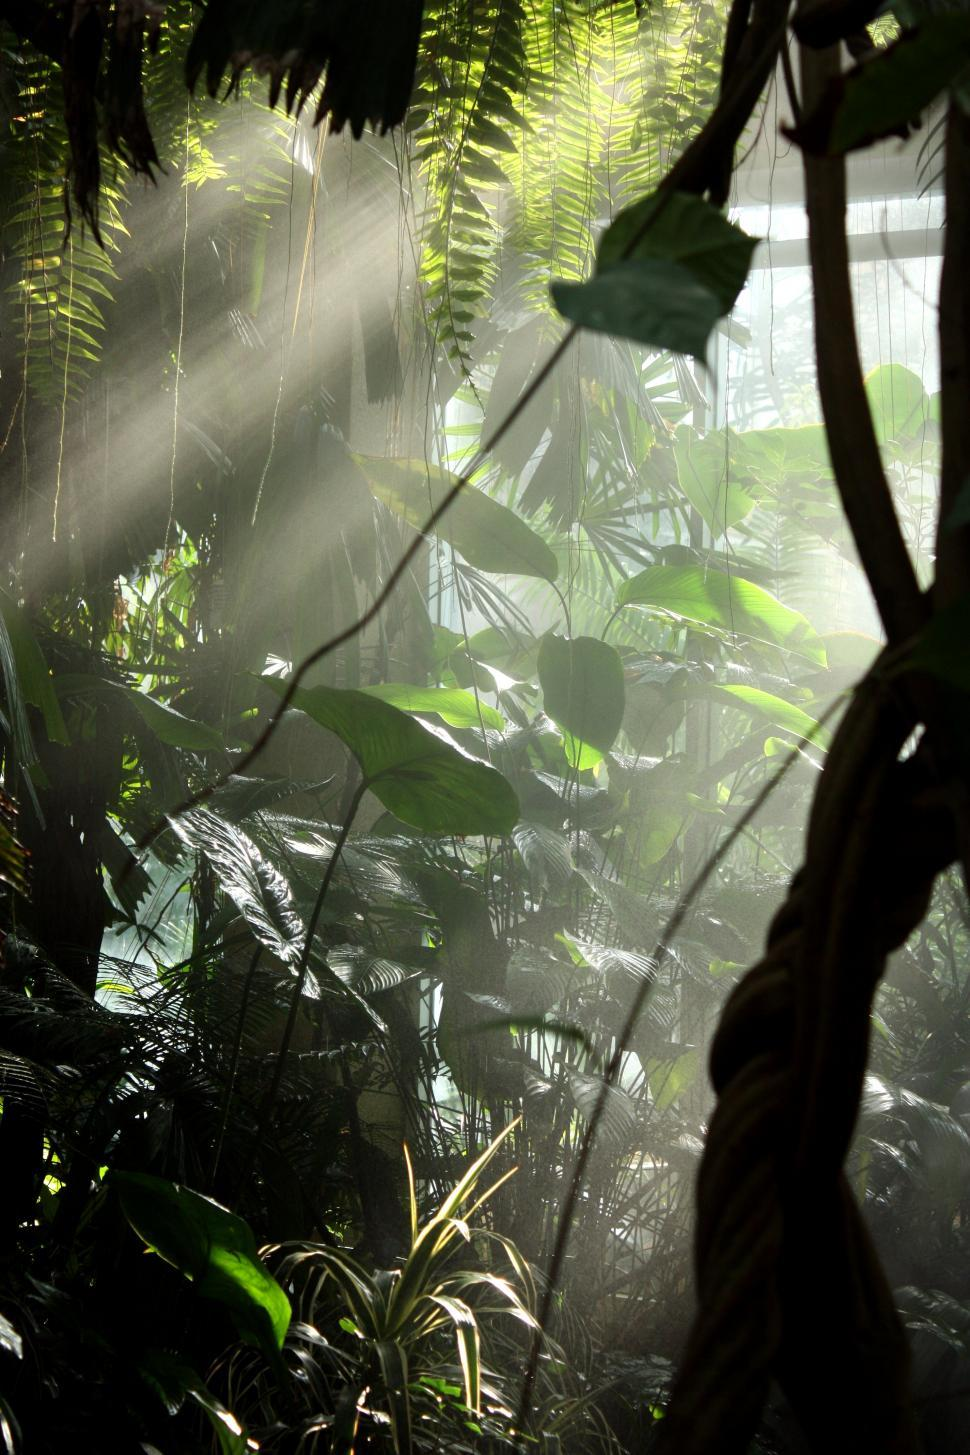 Download Free Stock Photo of Sunlight shining through mist and tropical foliage